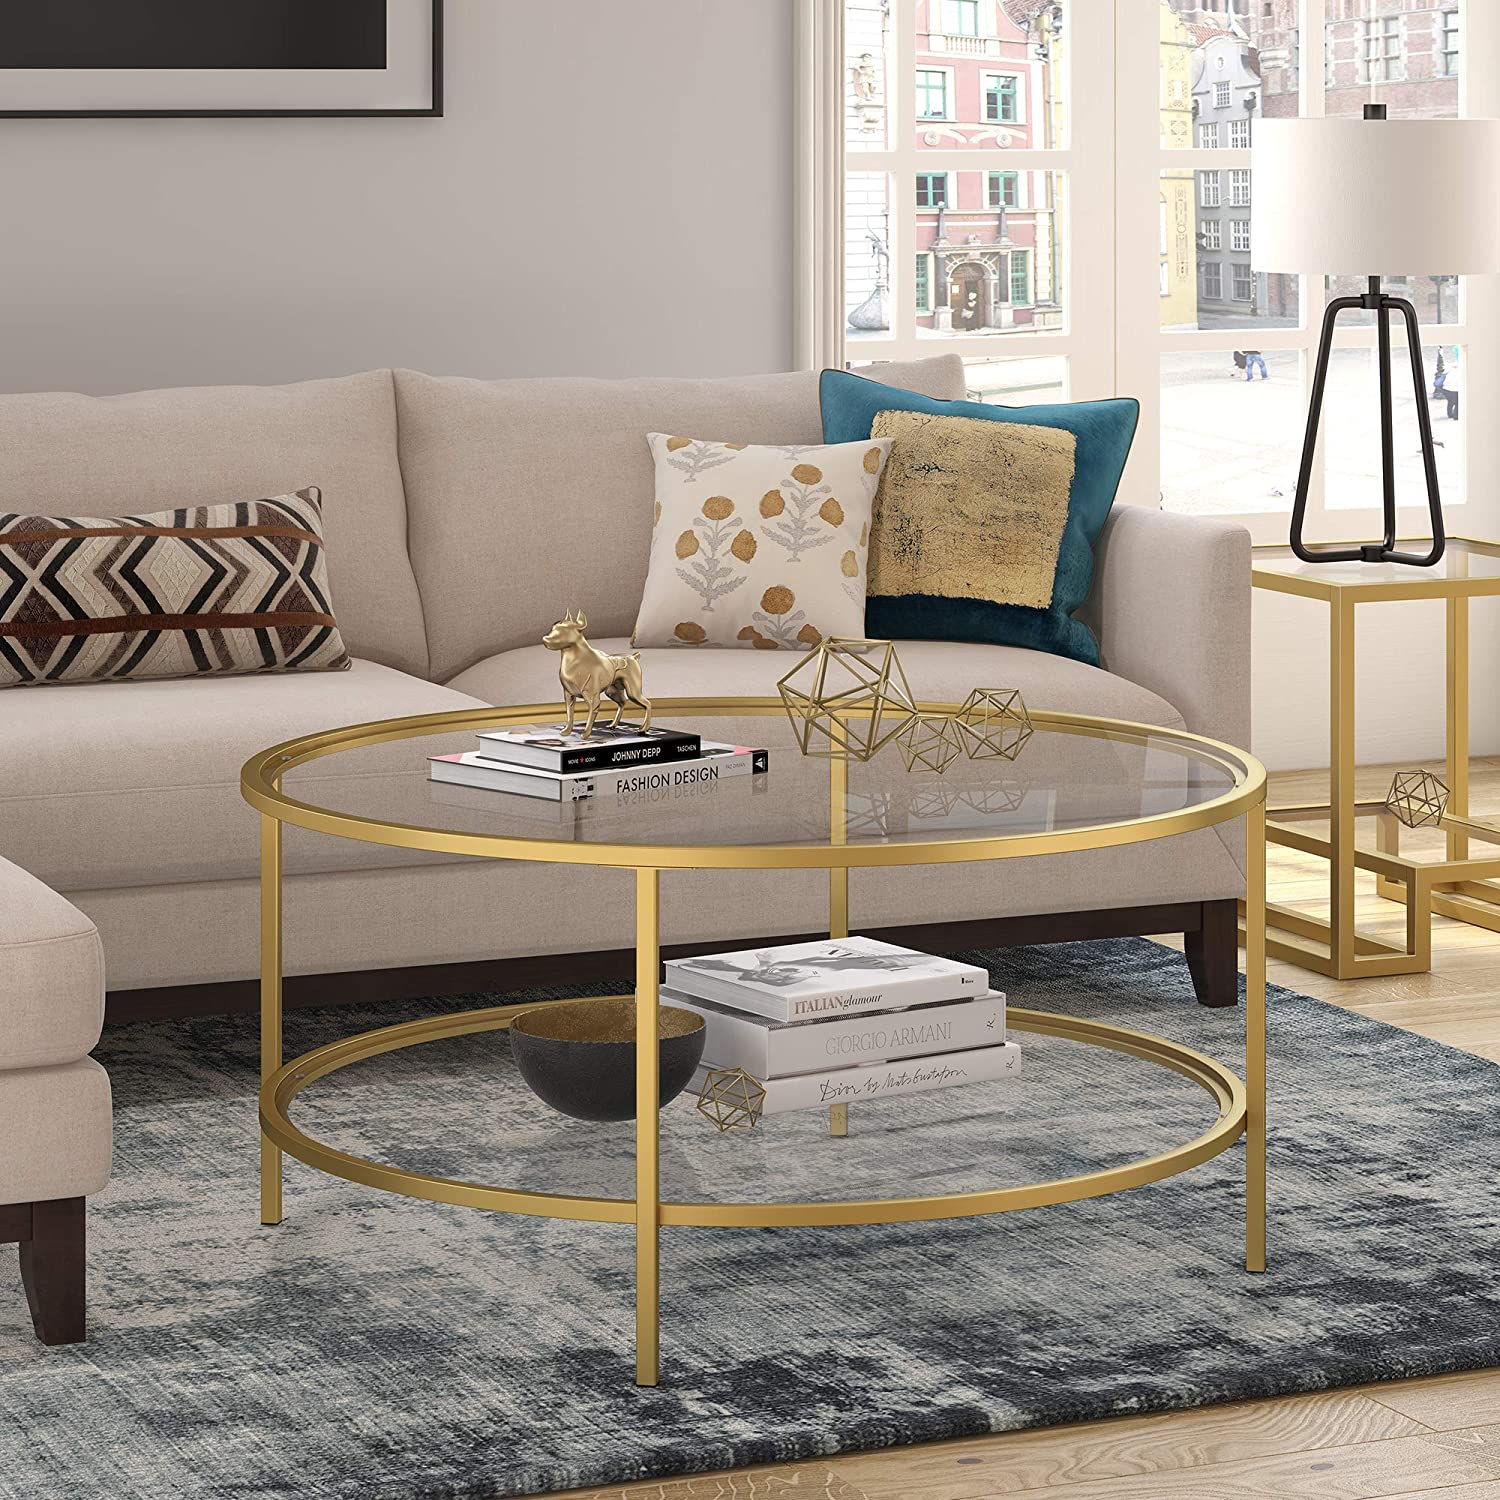 Henn&Hart Round coffee table, Gold